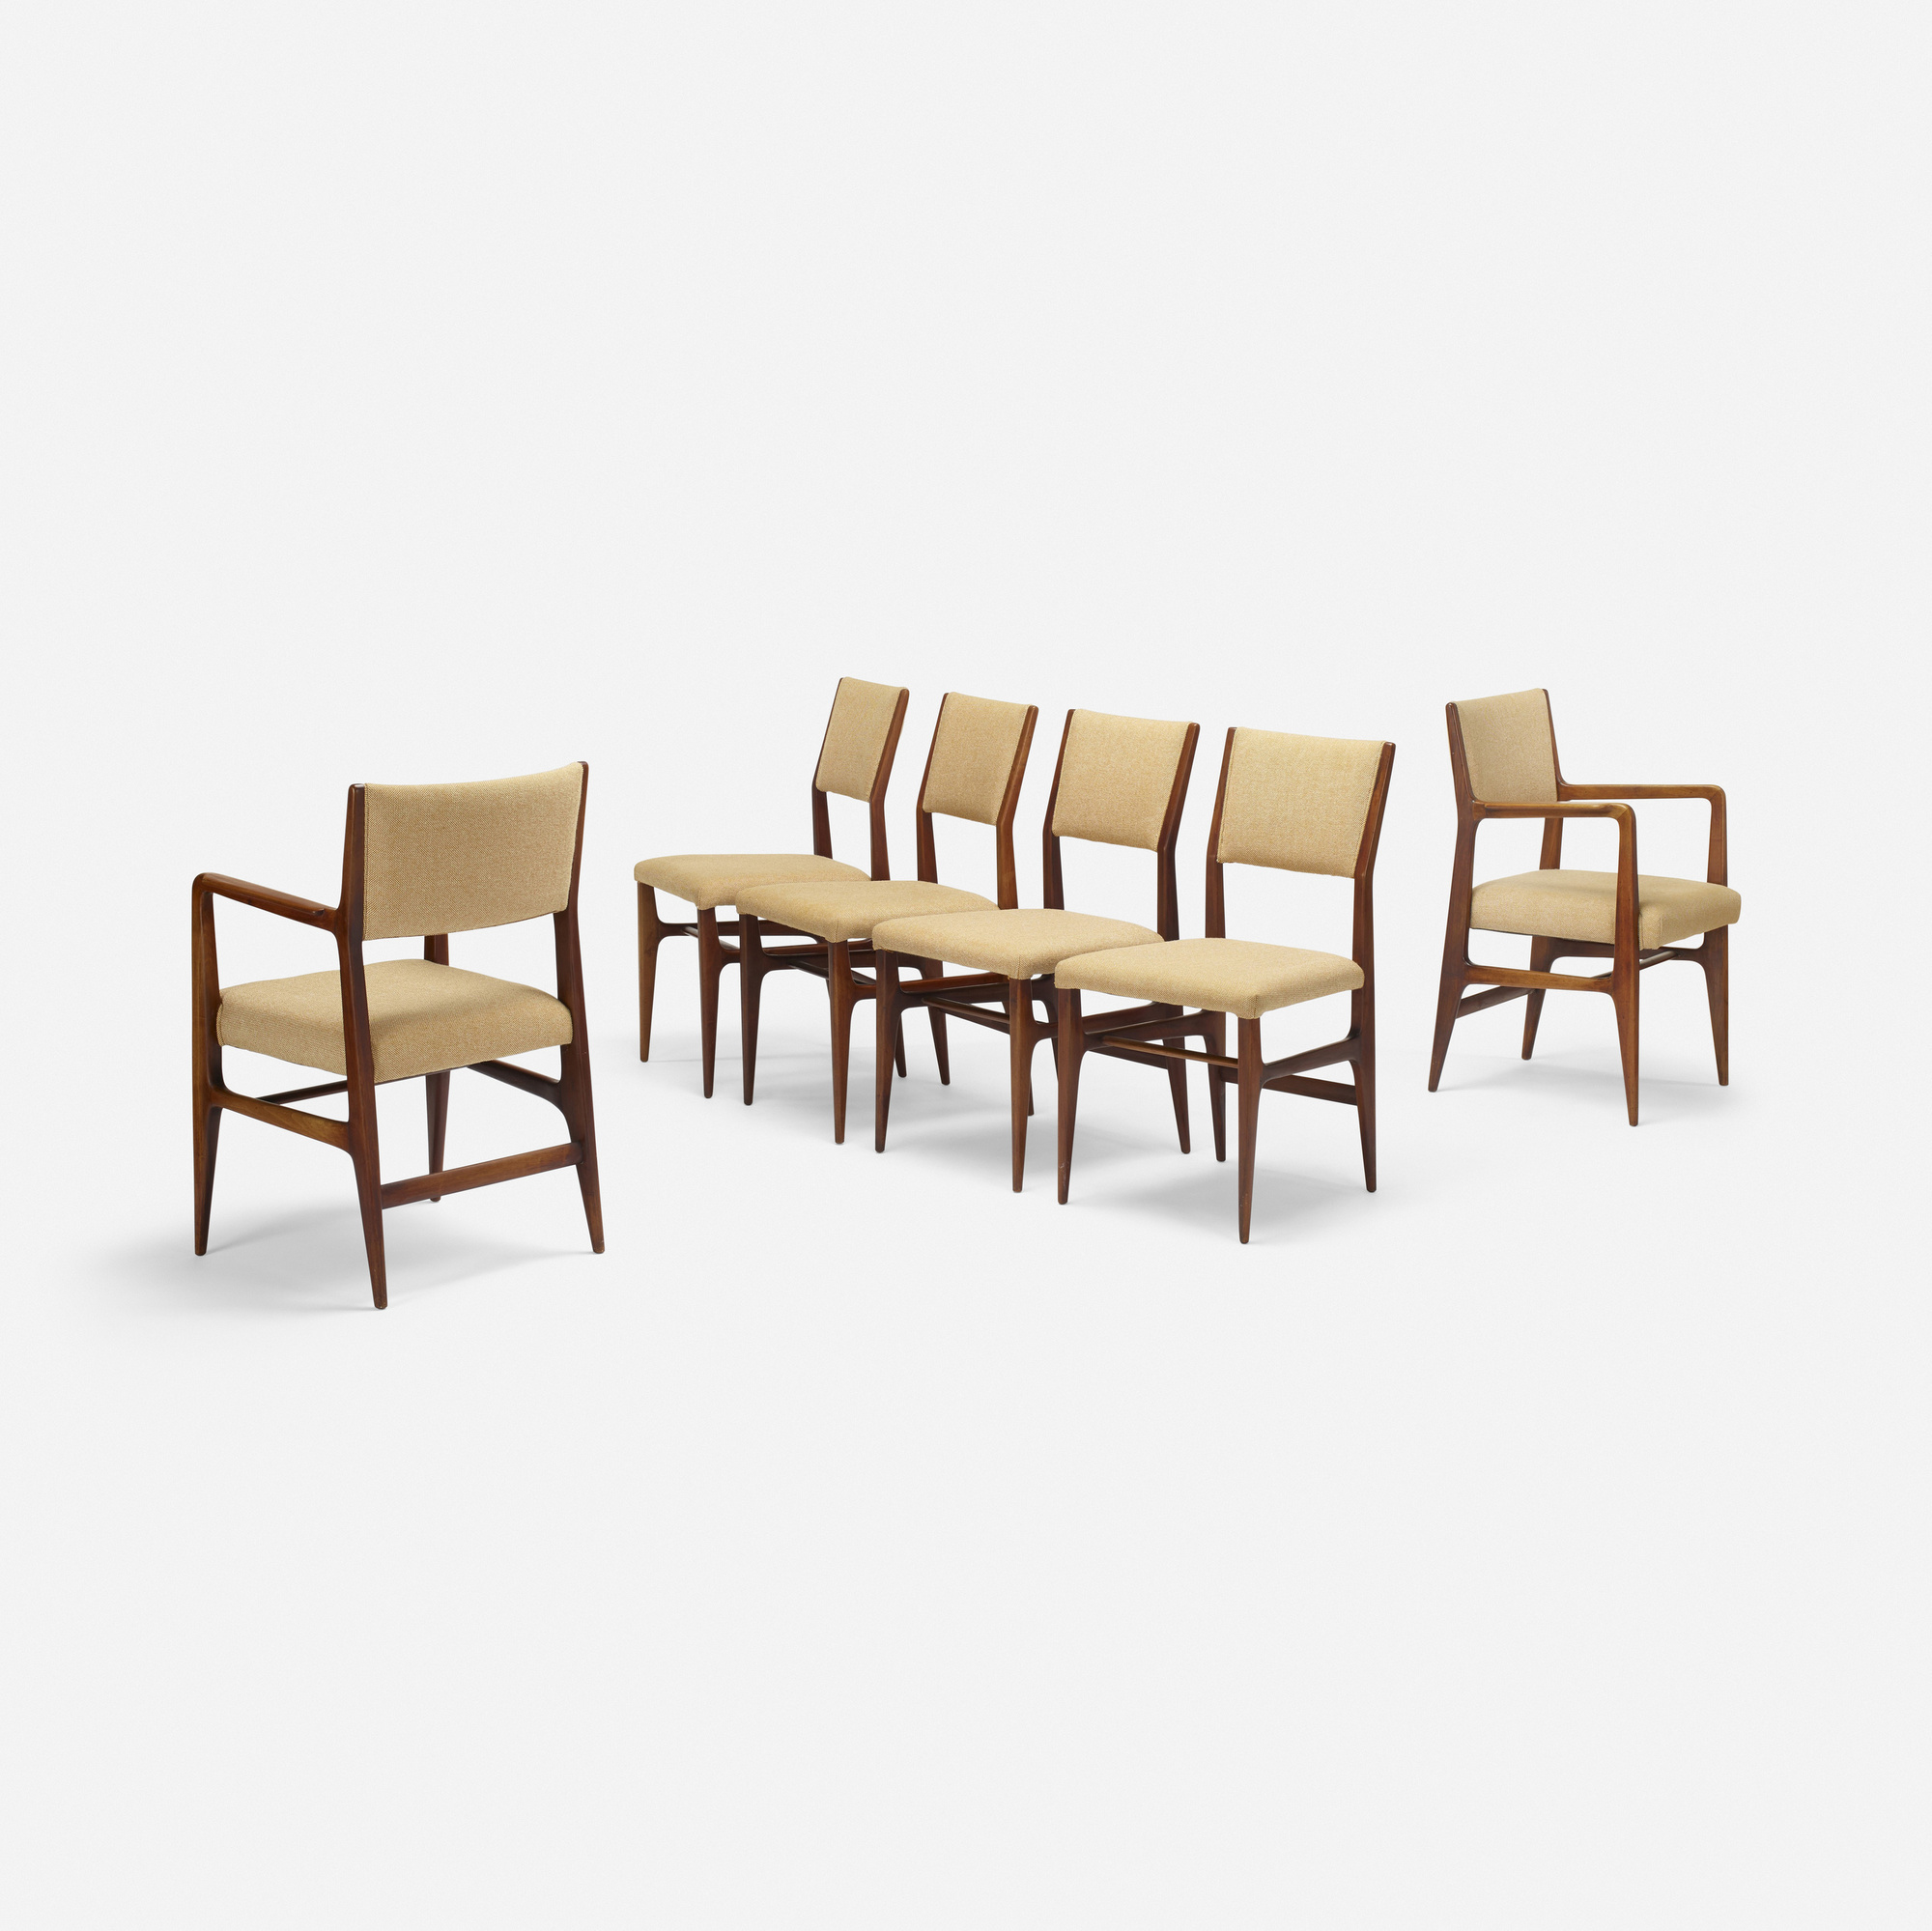 302: Gio Ponti / dining chairs, set of six (2 of 4)